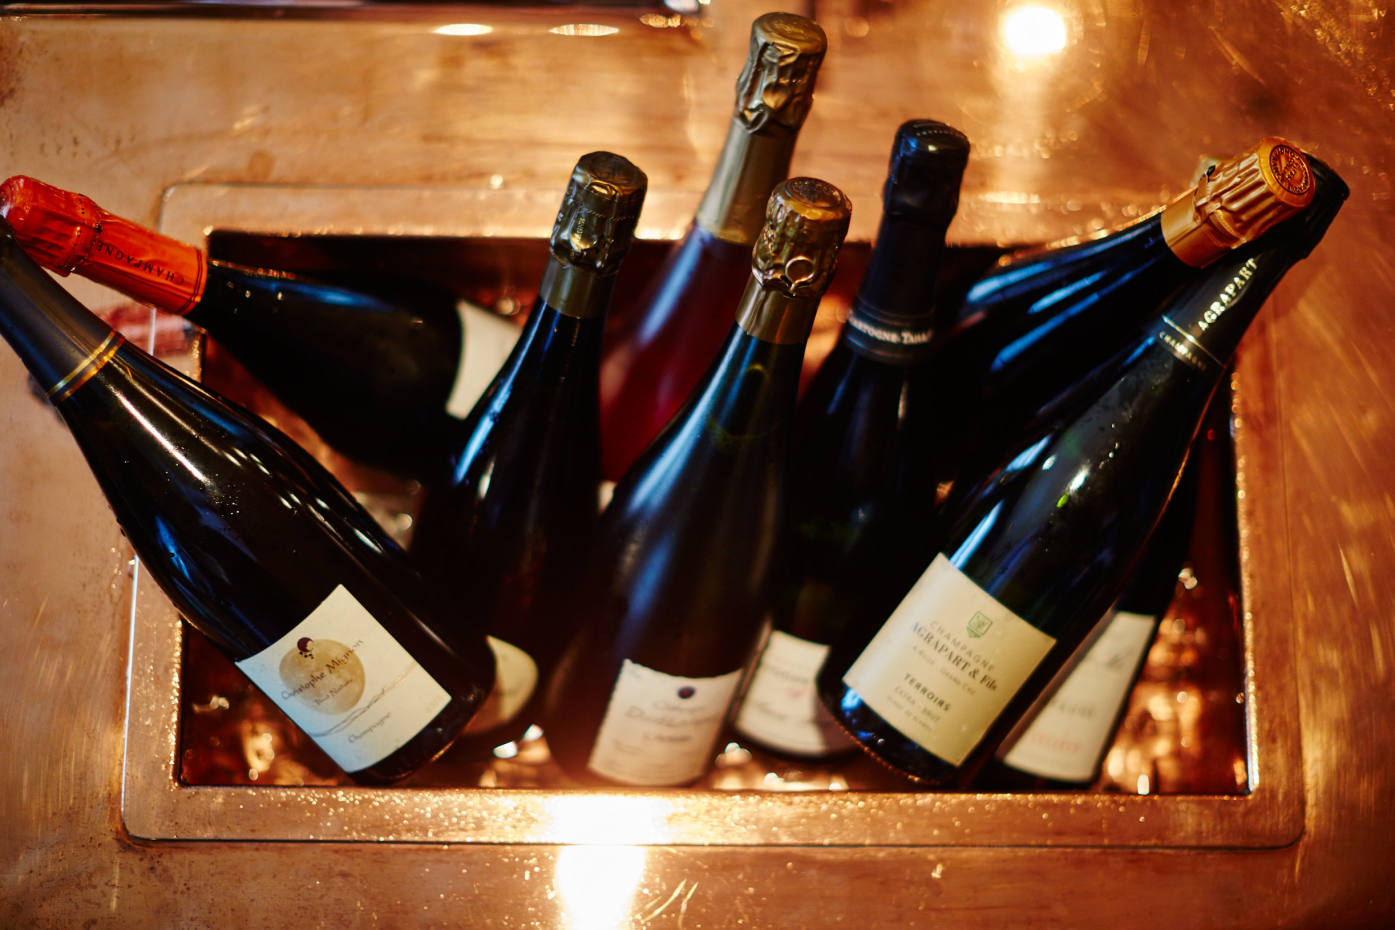 A selection of Bubble Shop champagnes and sparkling wines, available for delivery